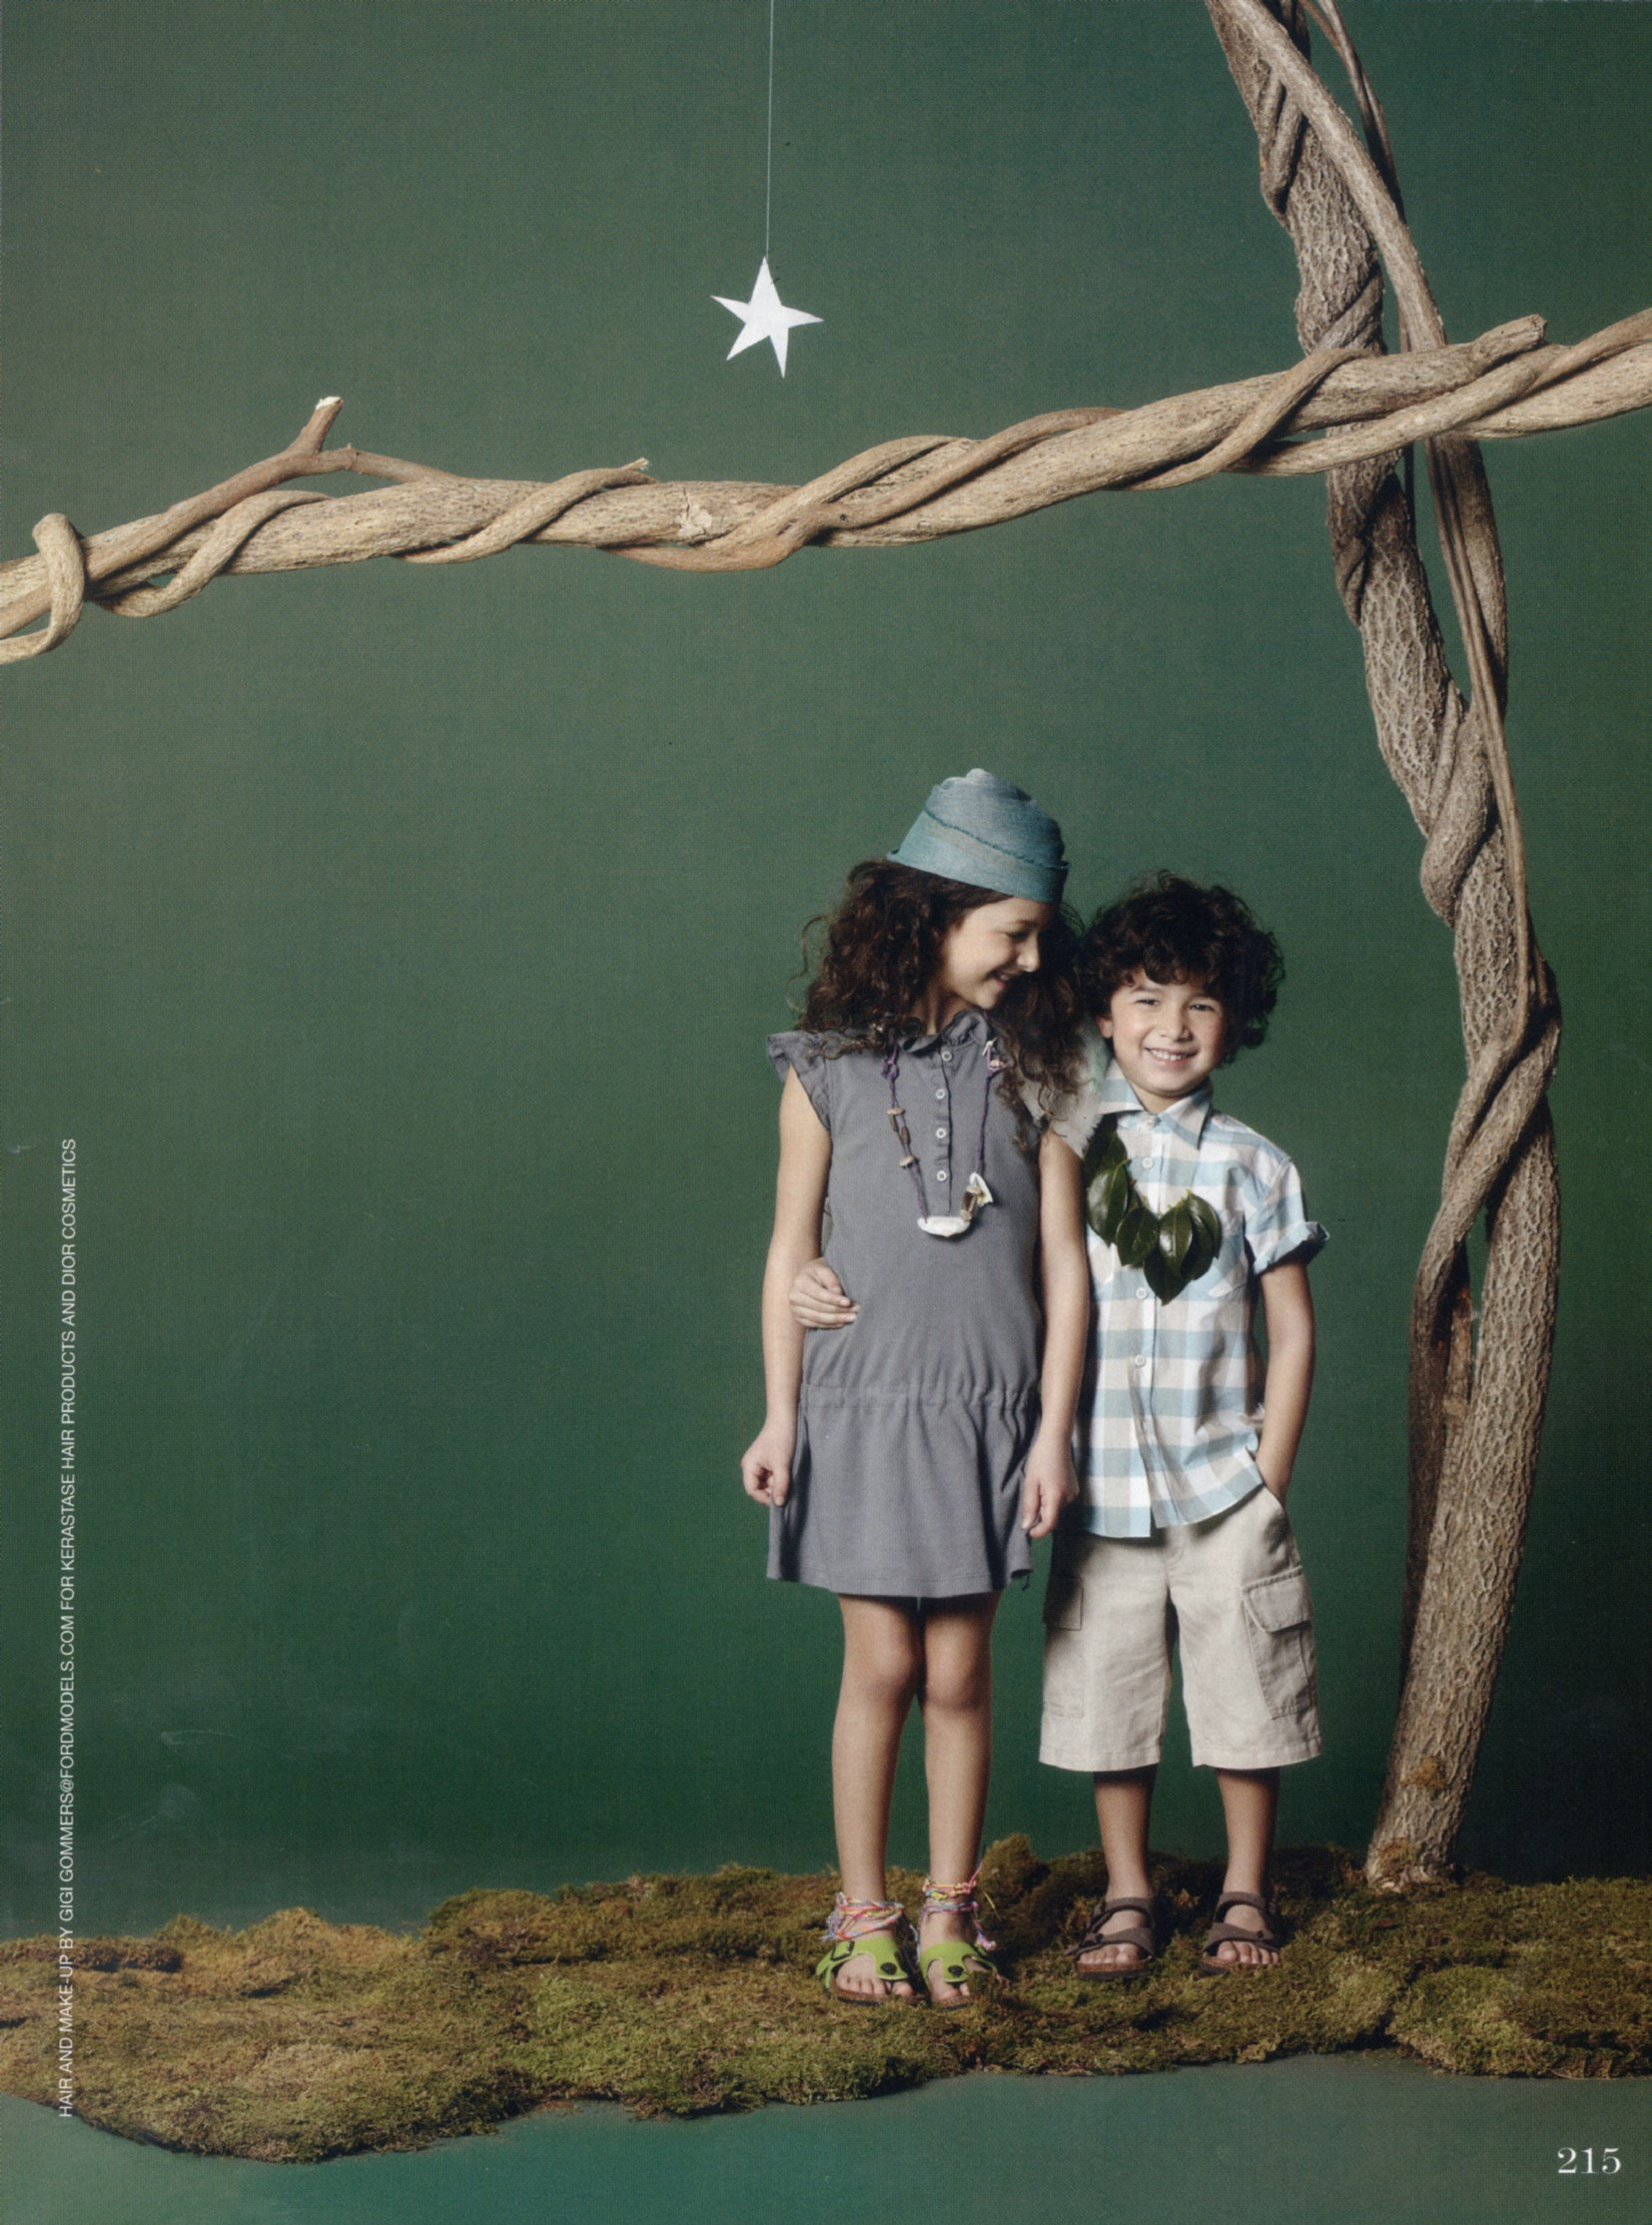 Farrow & Ball Drew Sackheim Shoots Vogue Bambini | Jmi